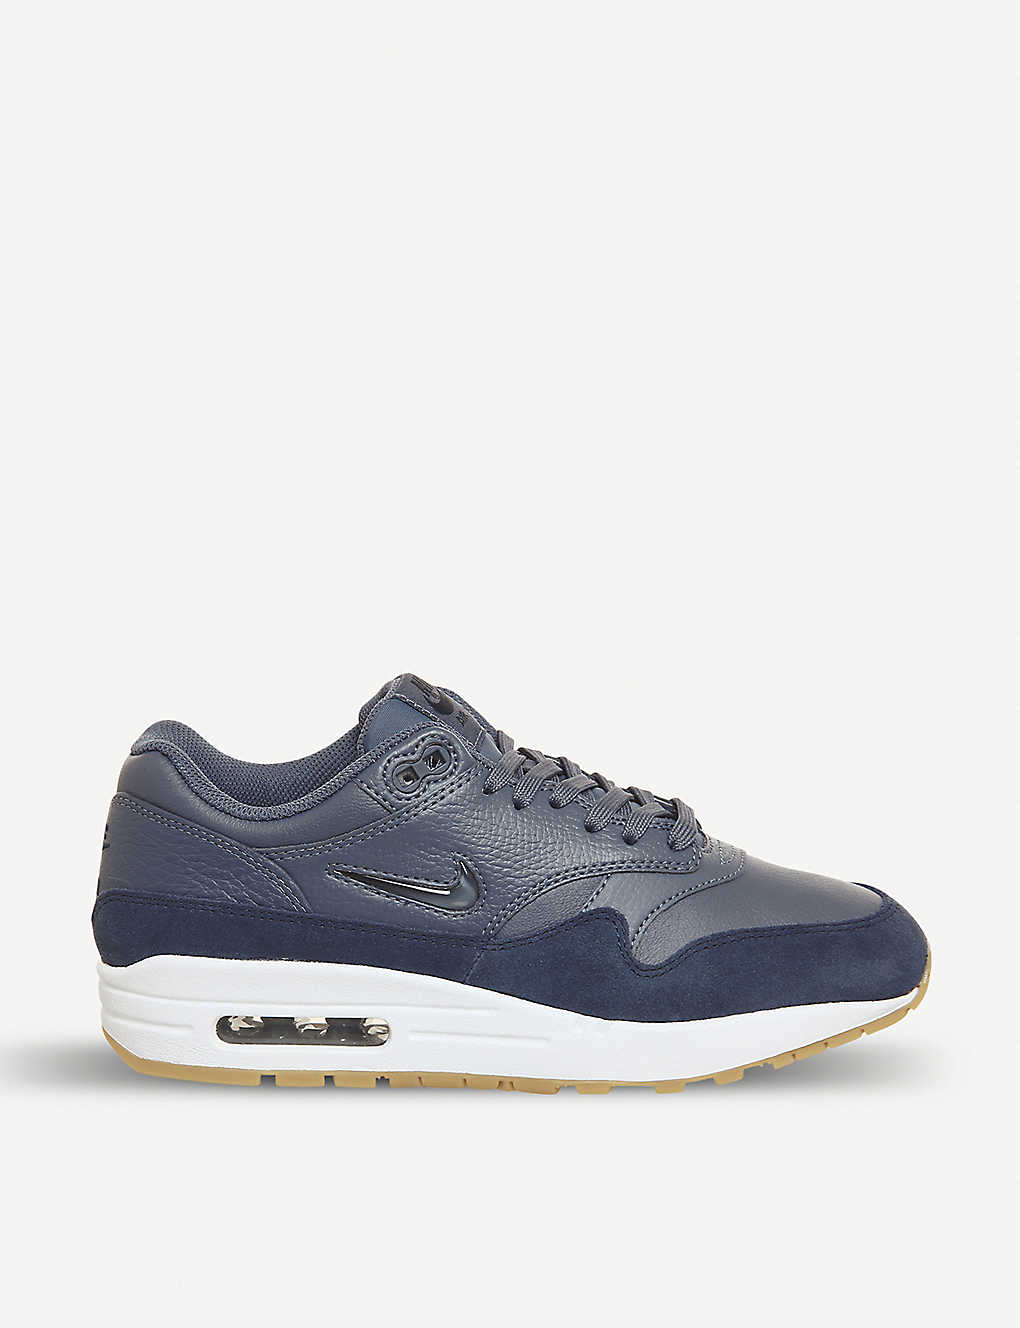 4972e1dd1 NIKE - Air Max 1 Jewel leather and suede trainers | Selfridges.com